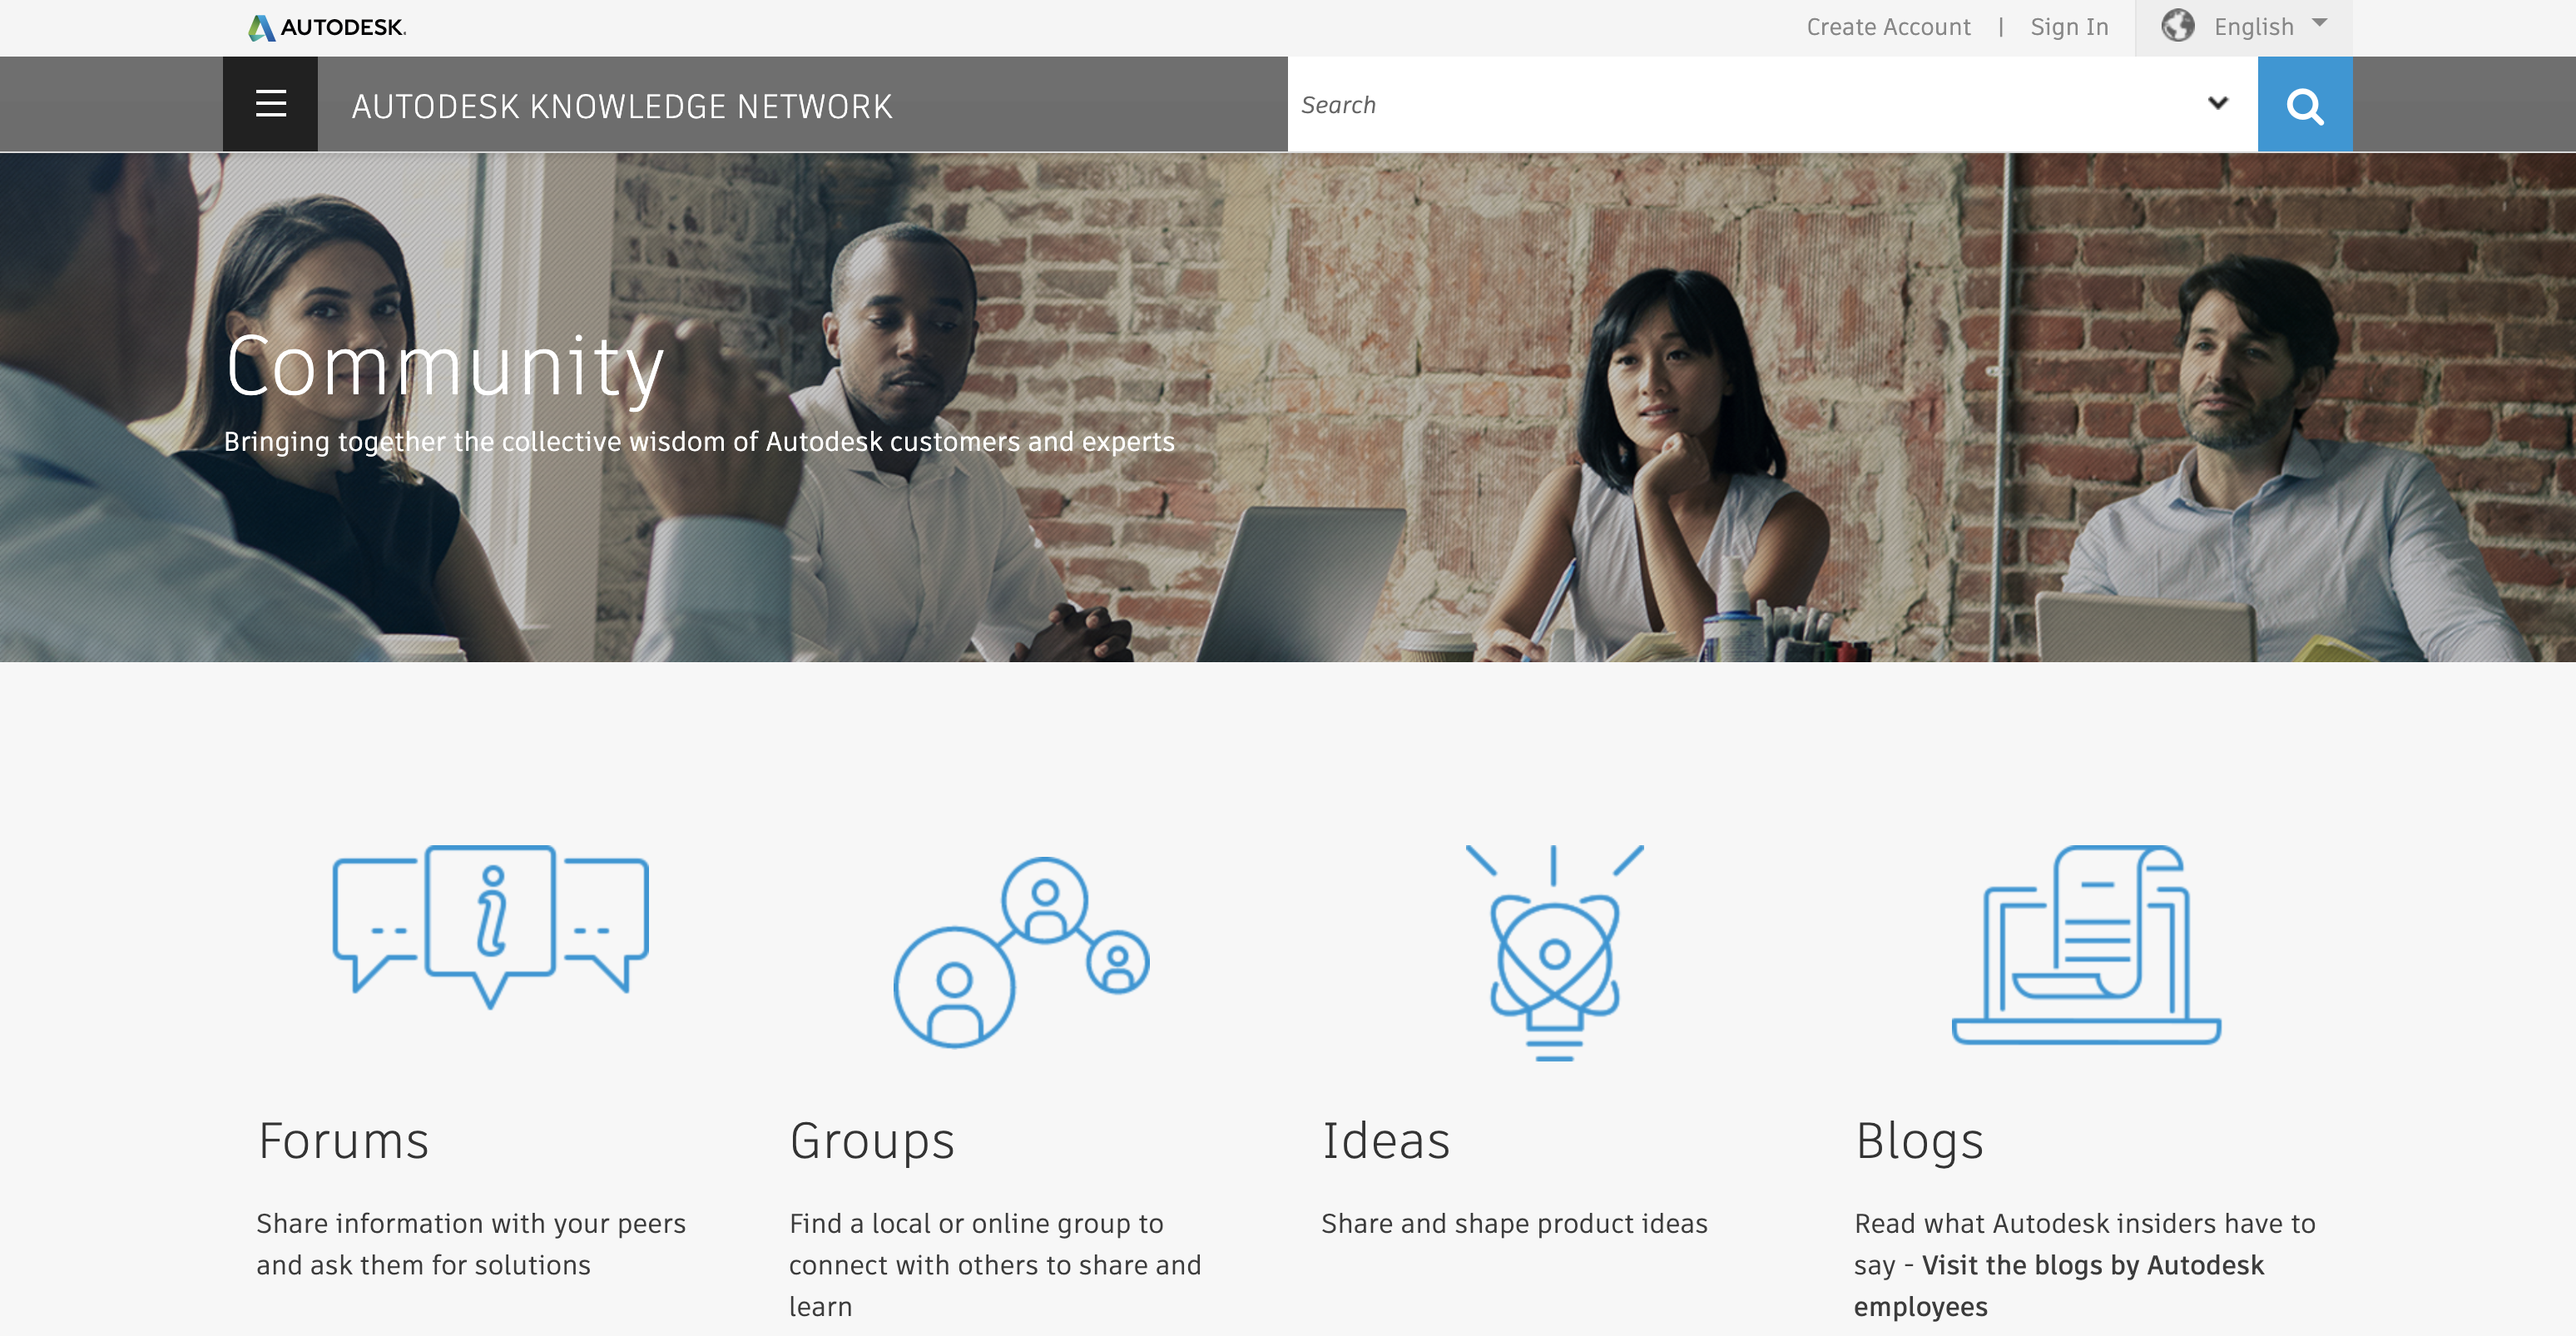 landing page preview of autodesk knowledge community portal